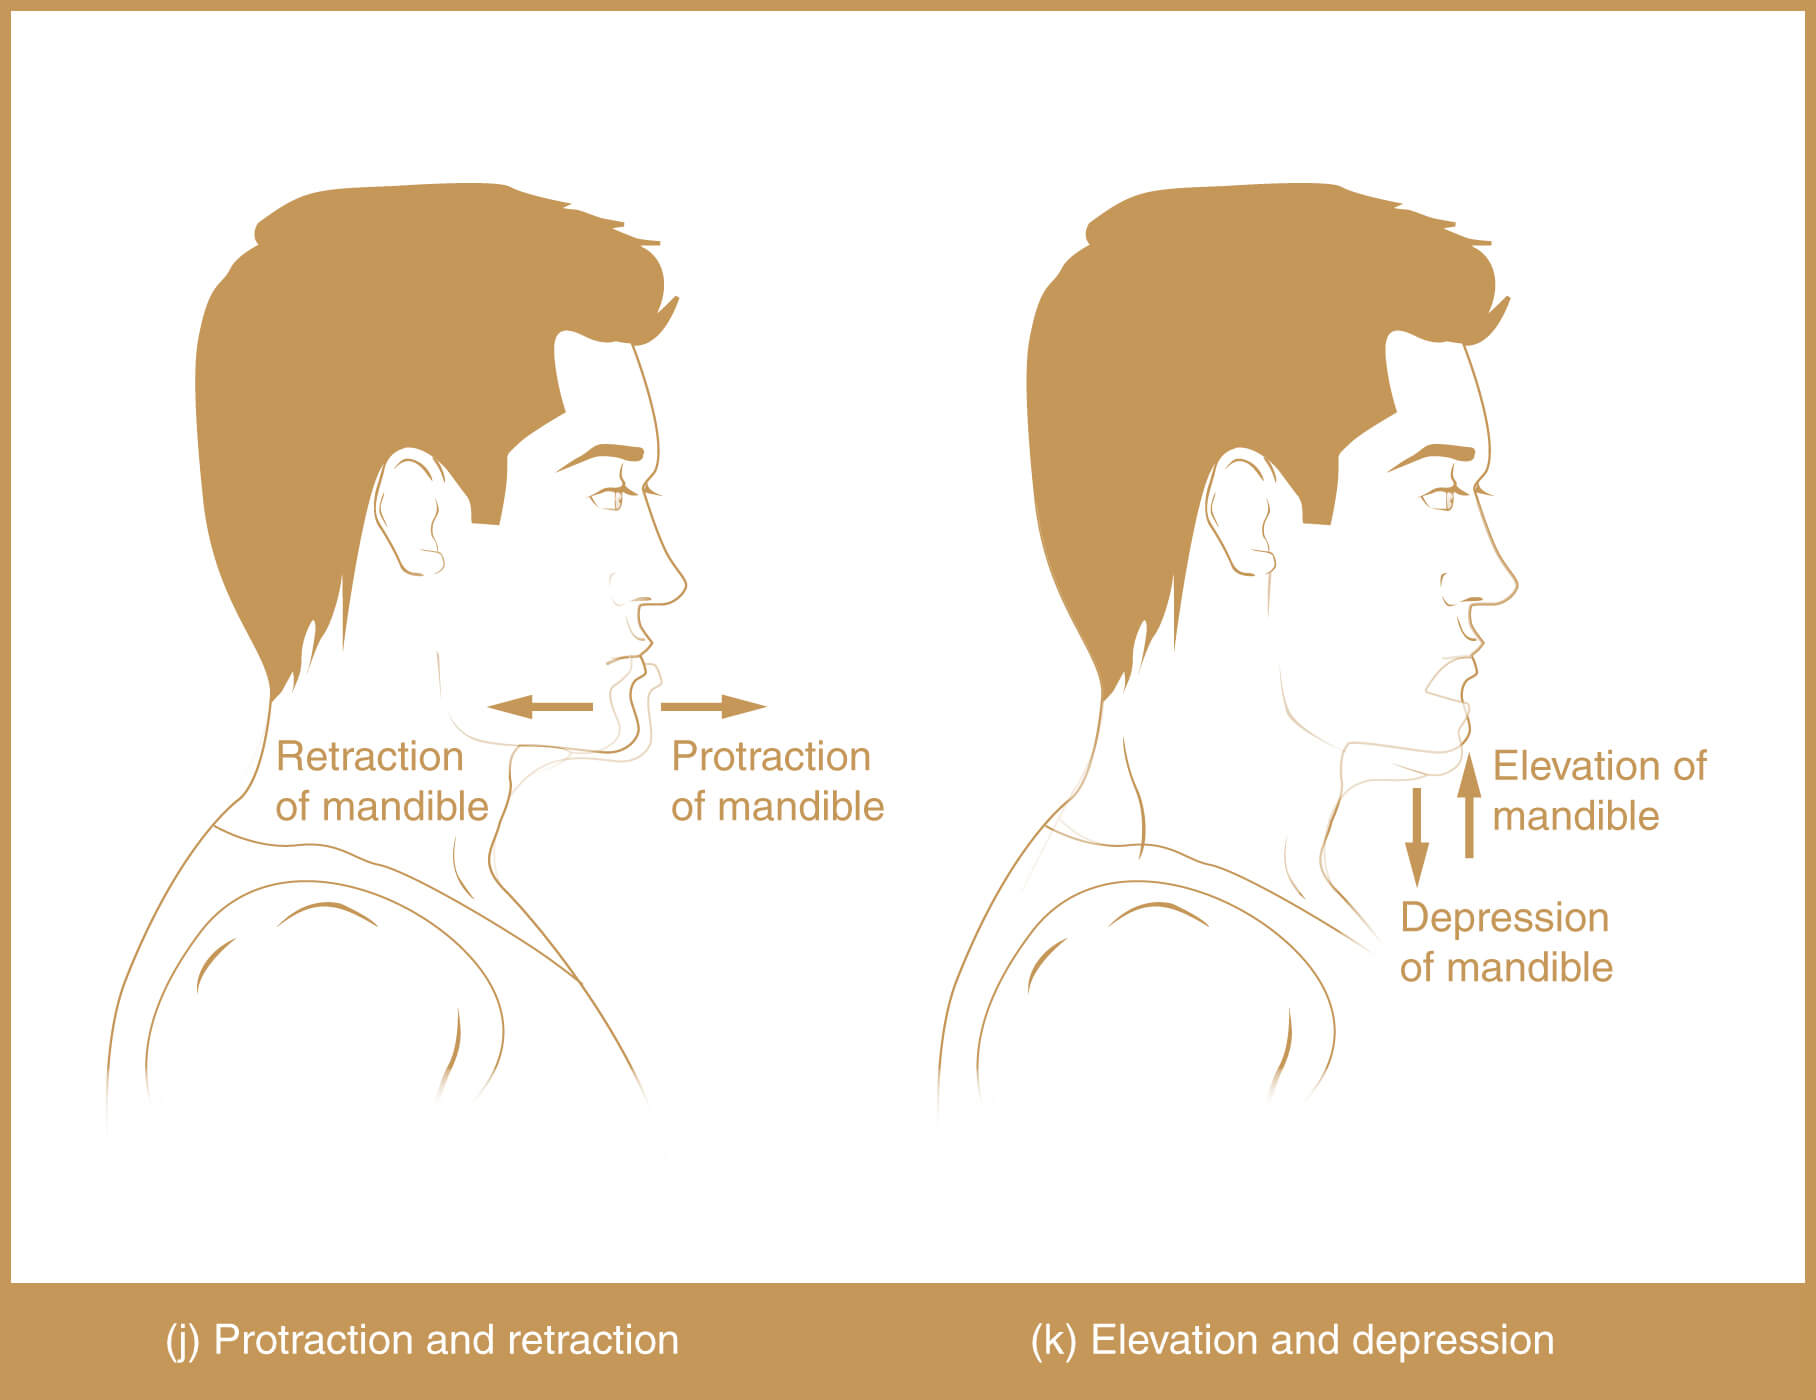 Types of Body Movement - Retraction, Protraction, Elevation, Depression